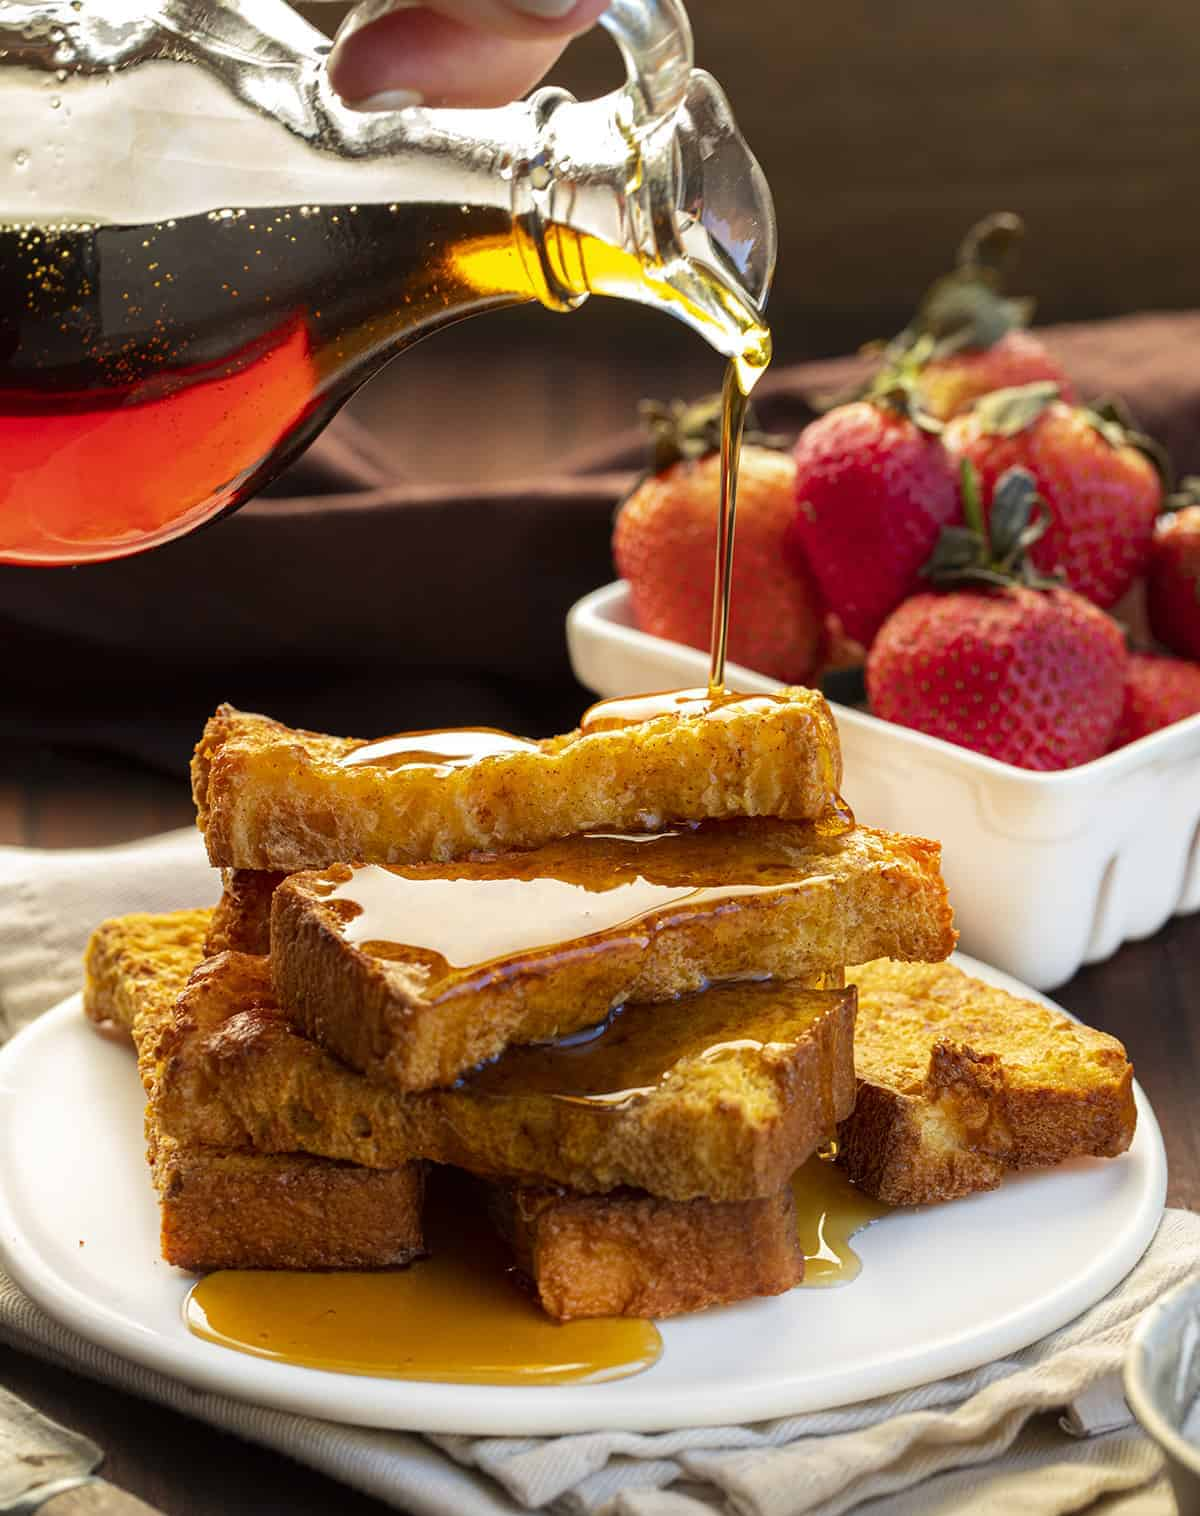 Pouring Syrup over Air Fryer French Toast Sticks